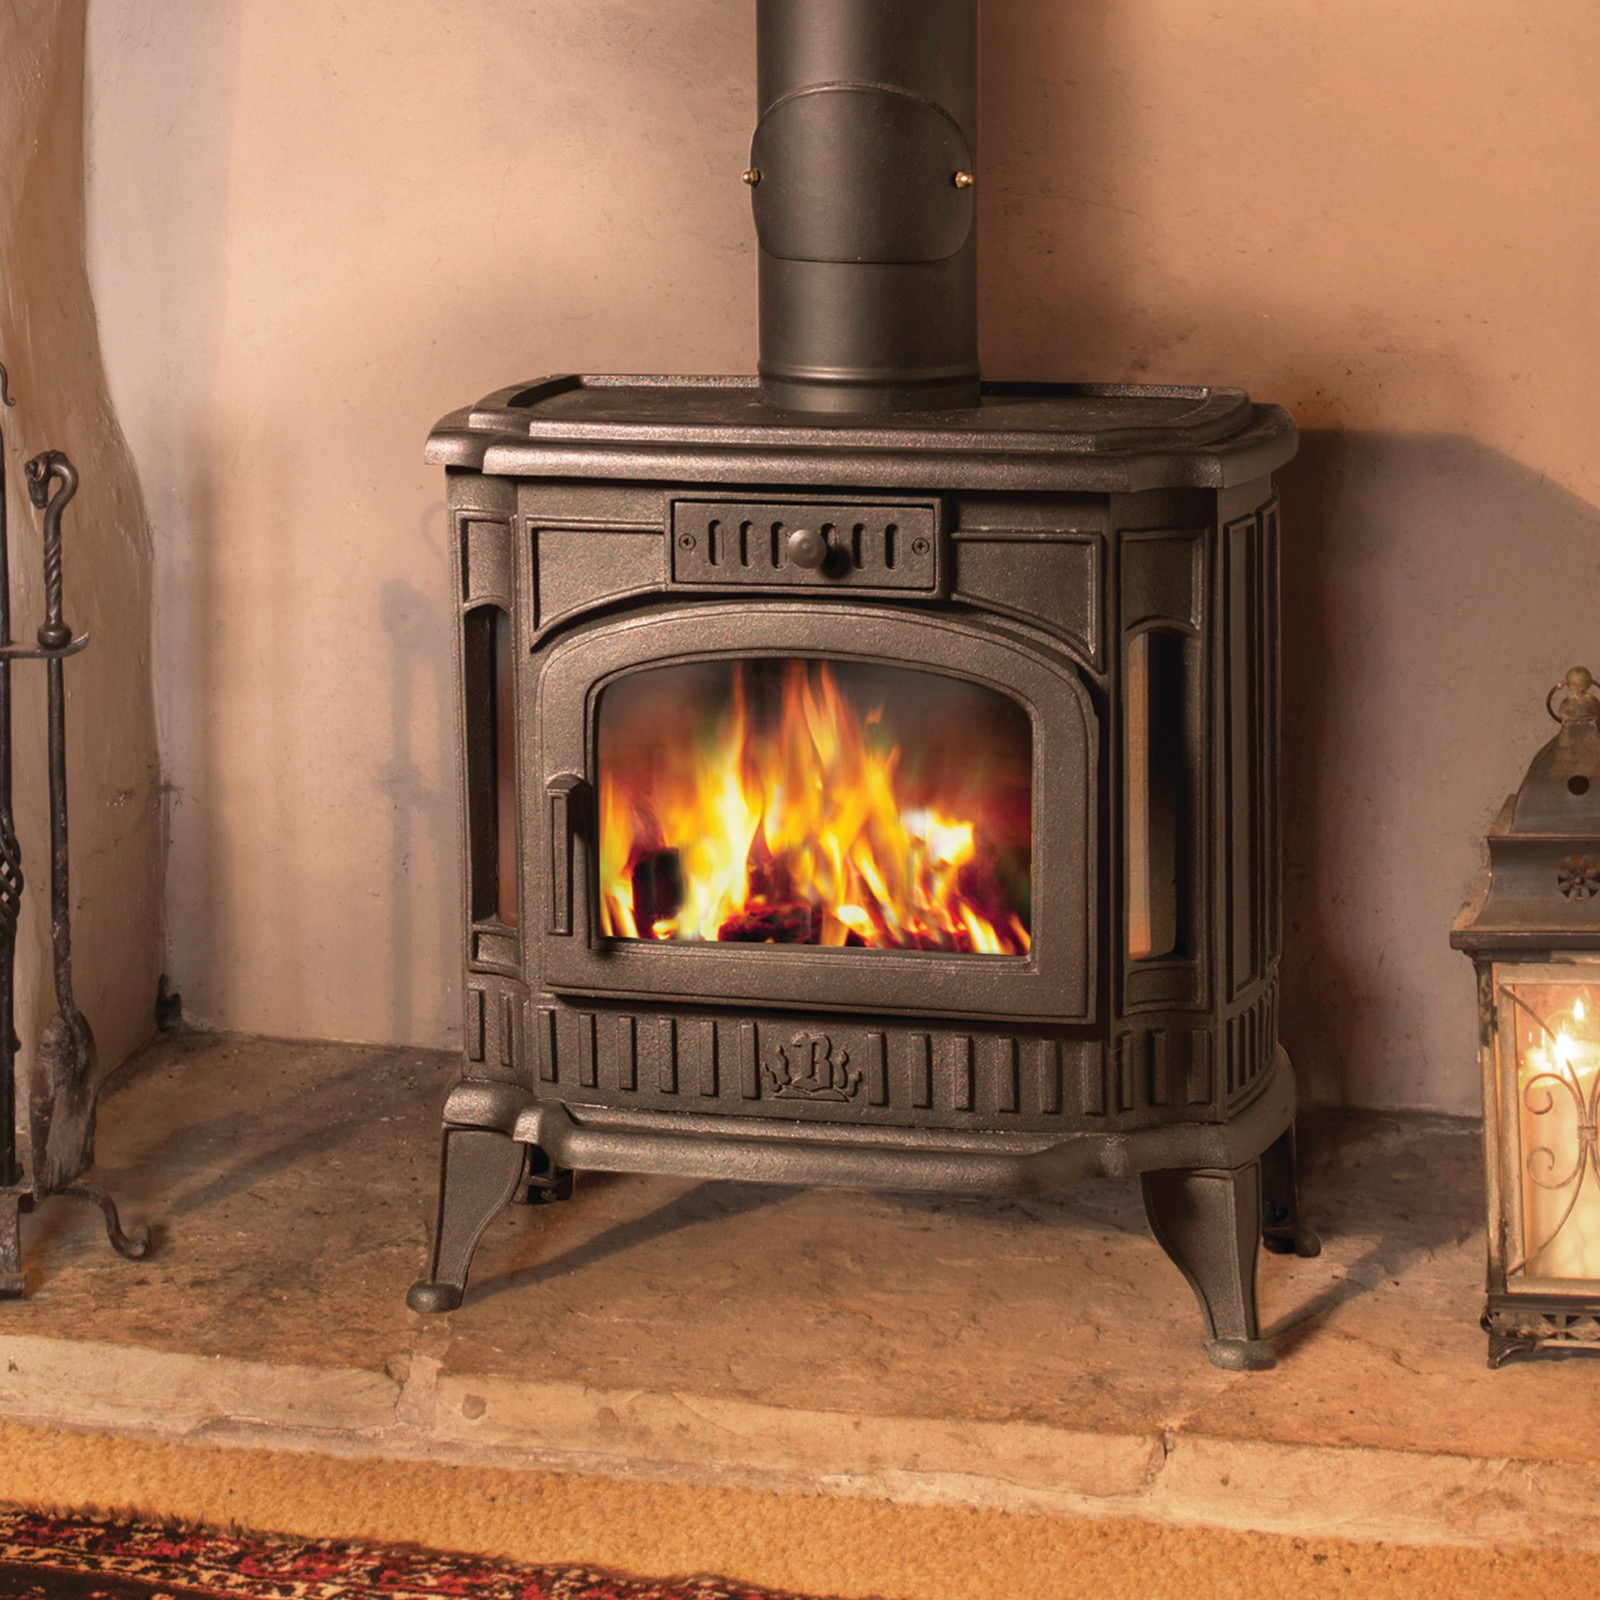 The Top 20 Ideas About Gas Fireplace Stove